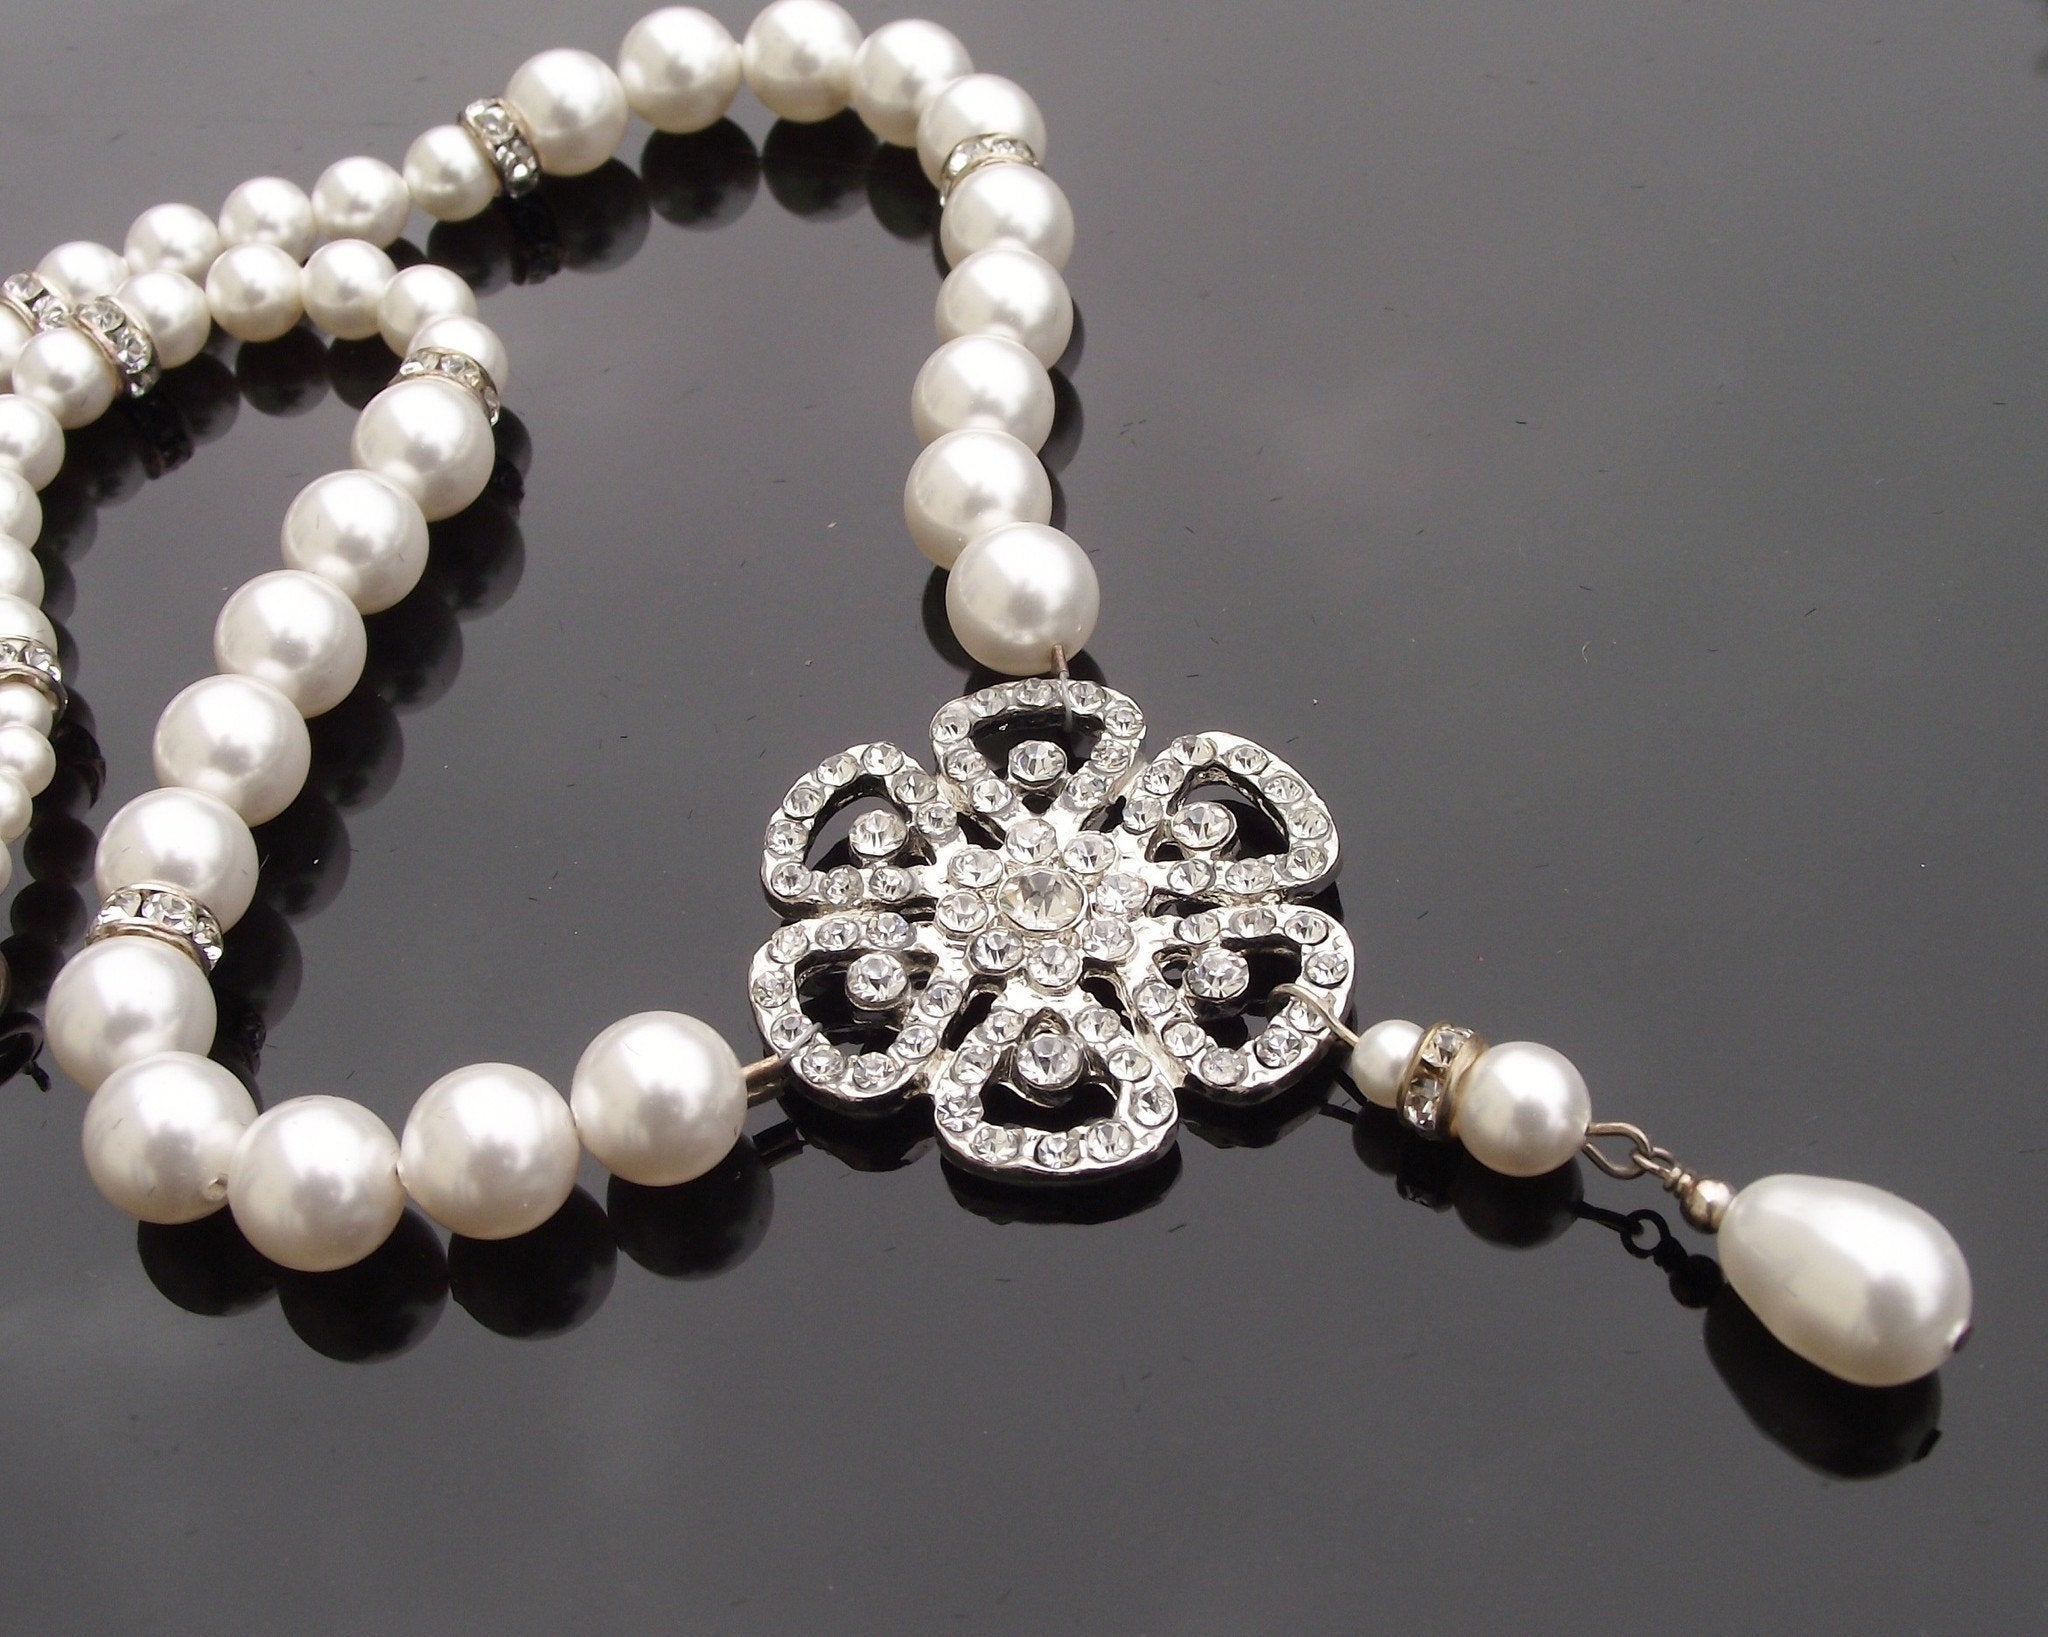 Wedding Bracelets - Vintage Inspired Pearl & Crystal Necklace, Phoebe